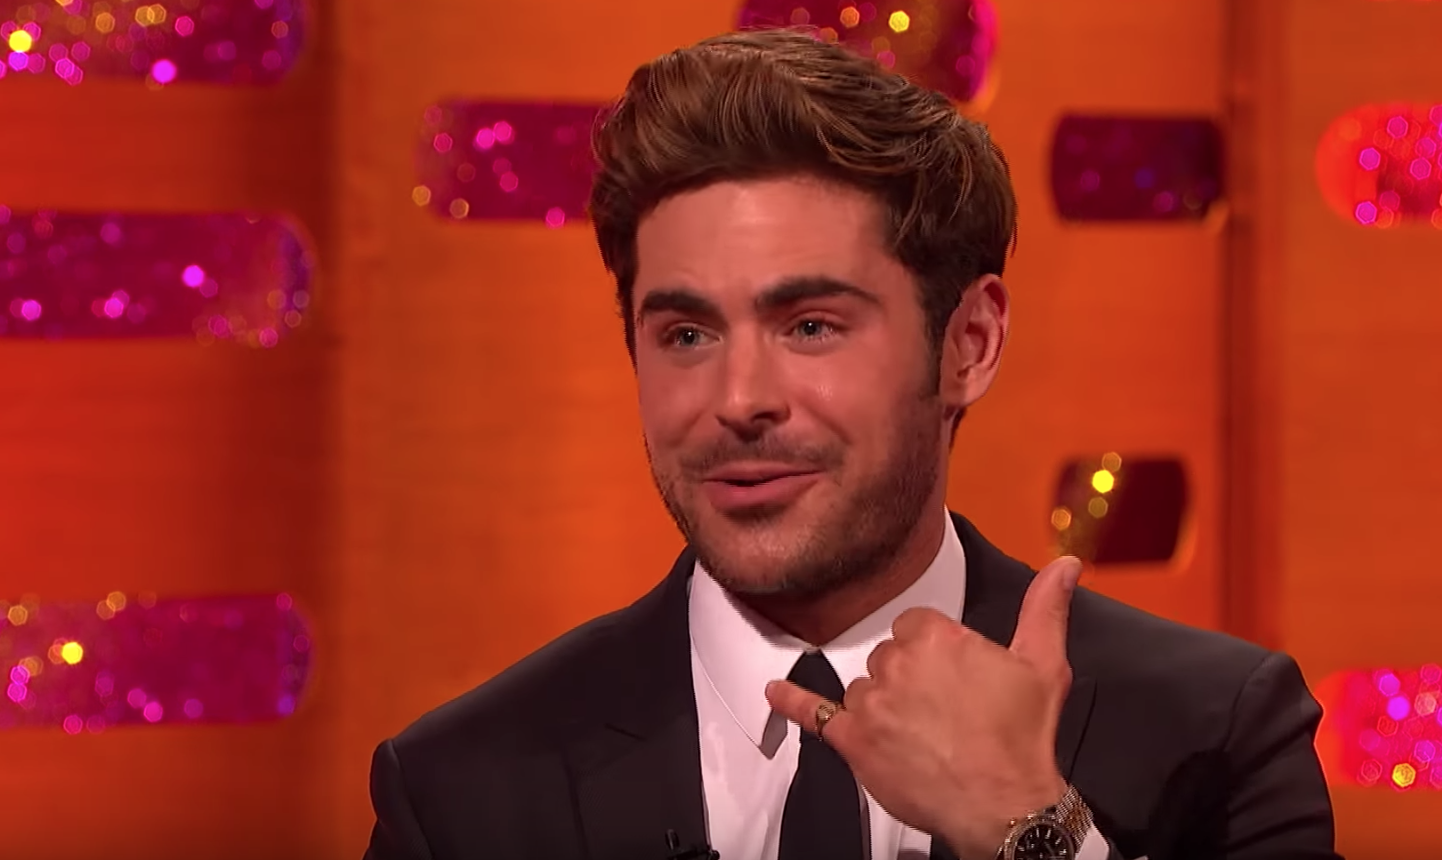 Michael Jackson Made Zac Efron Cry With One Simple Comment Screen Shot 2018 01 01 at 15.06.10